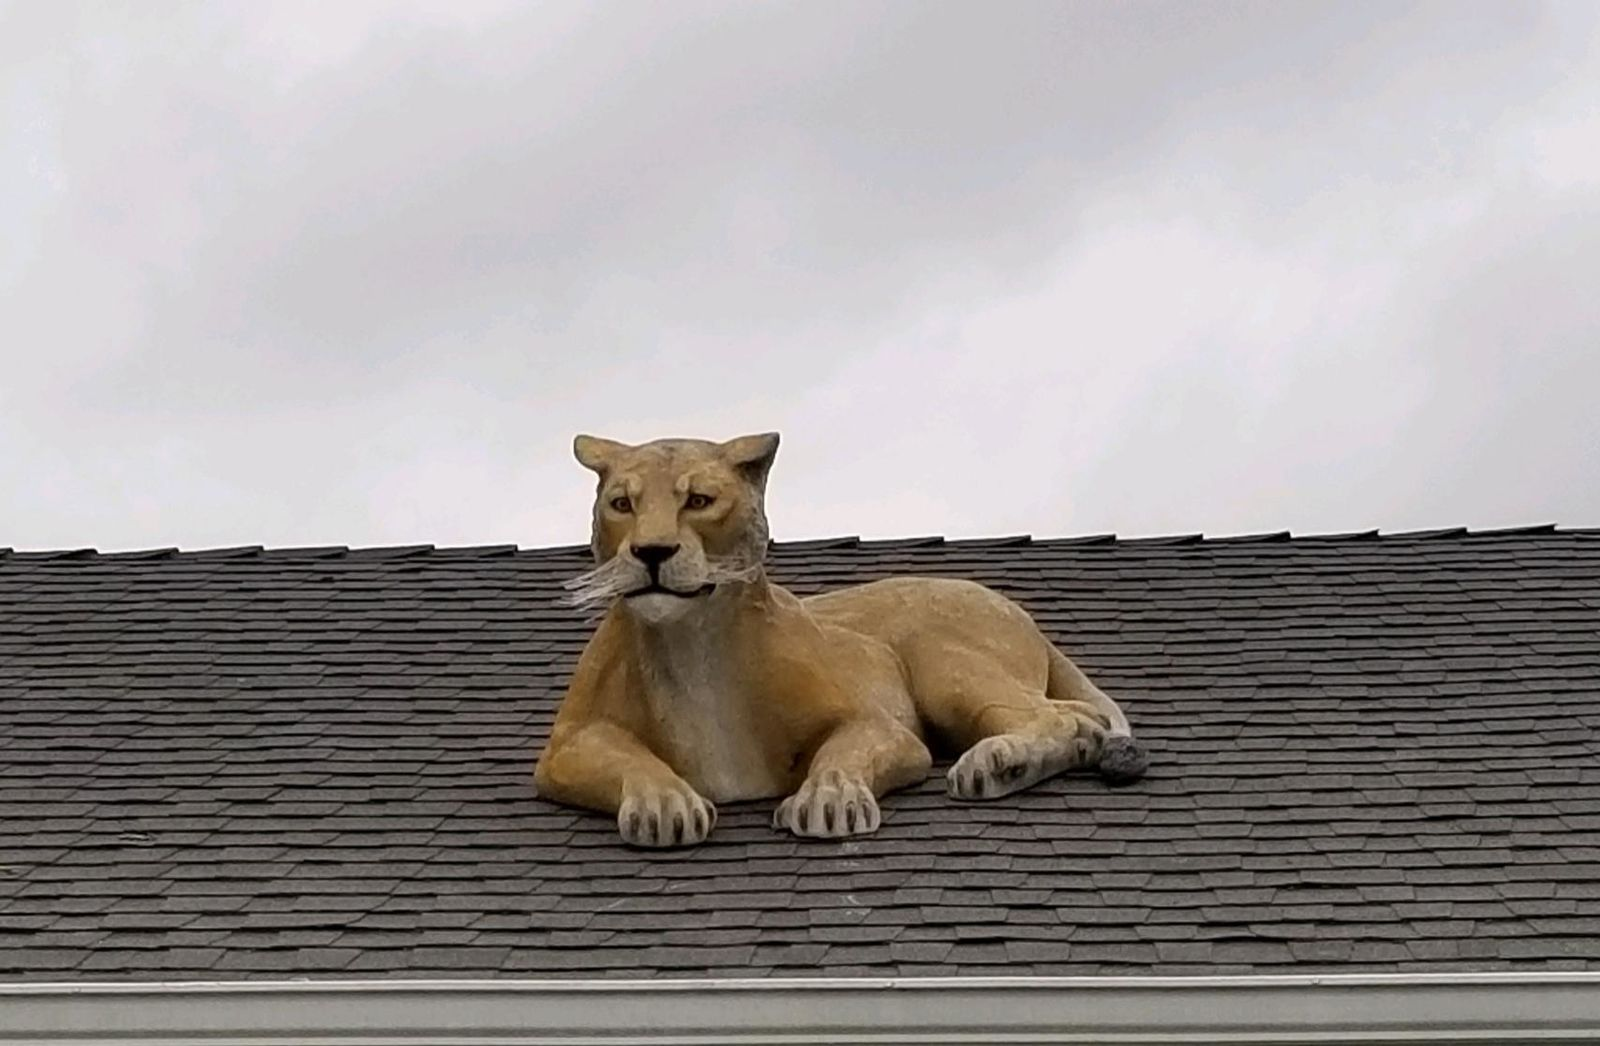 Aumsville resident John Forrest said he bought a lion made of resin from a gardening business and put it up on his roof. (Courtesy: John Forrest)